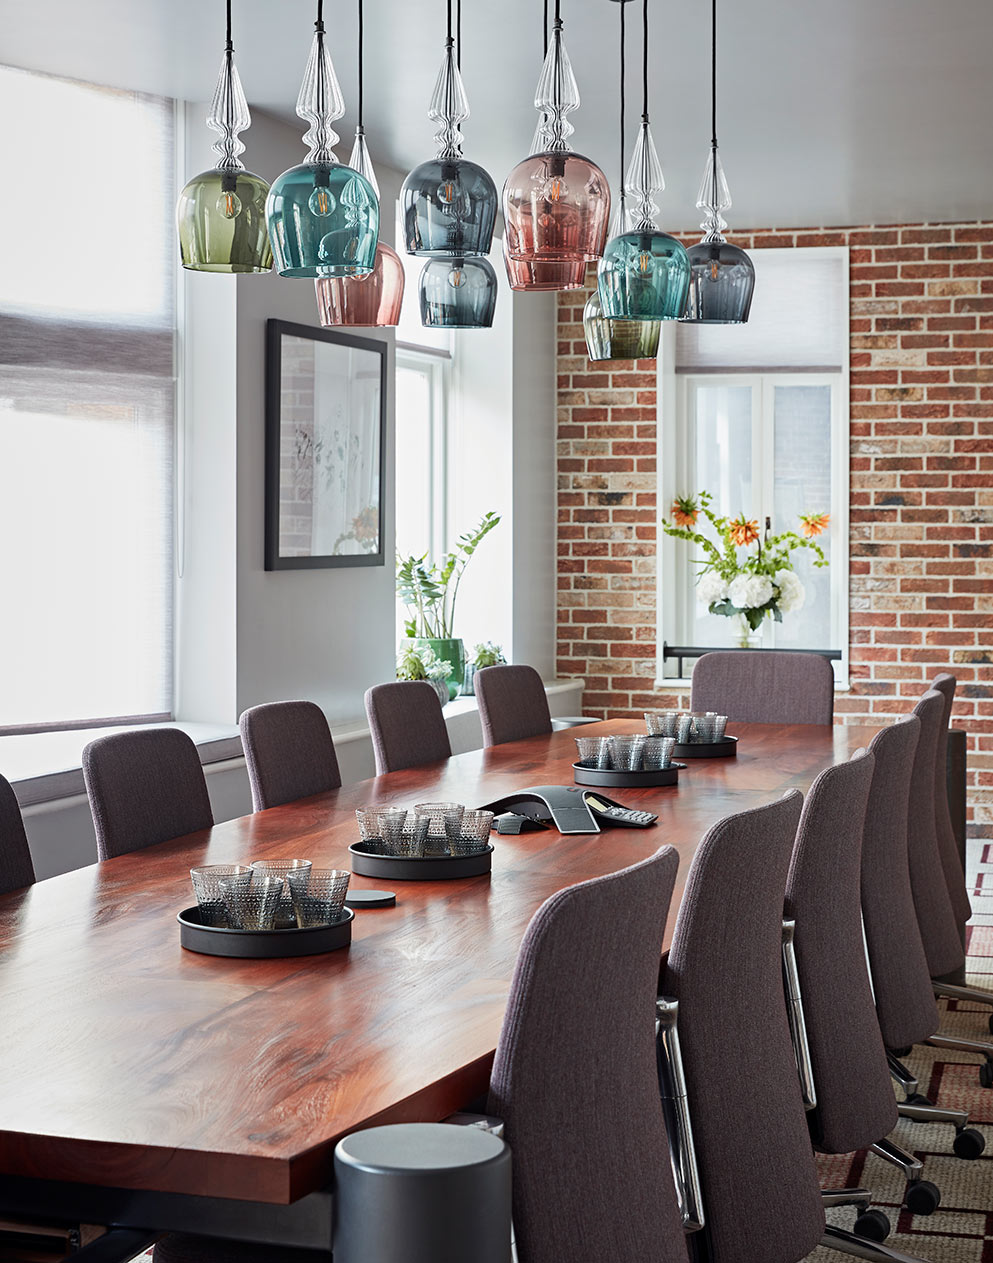 Really Useful Group London HQ meeting room with pastel glass lamps and wooden table